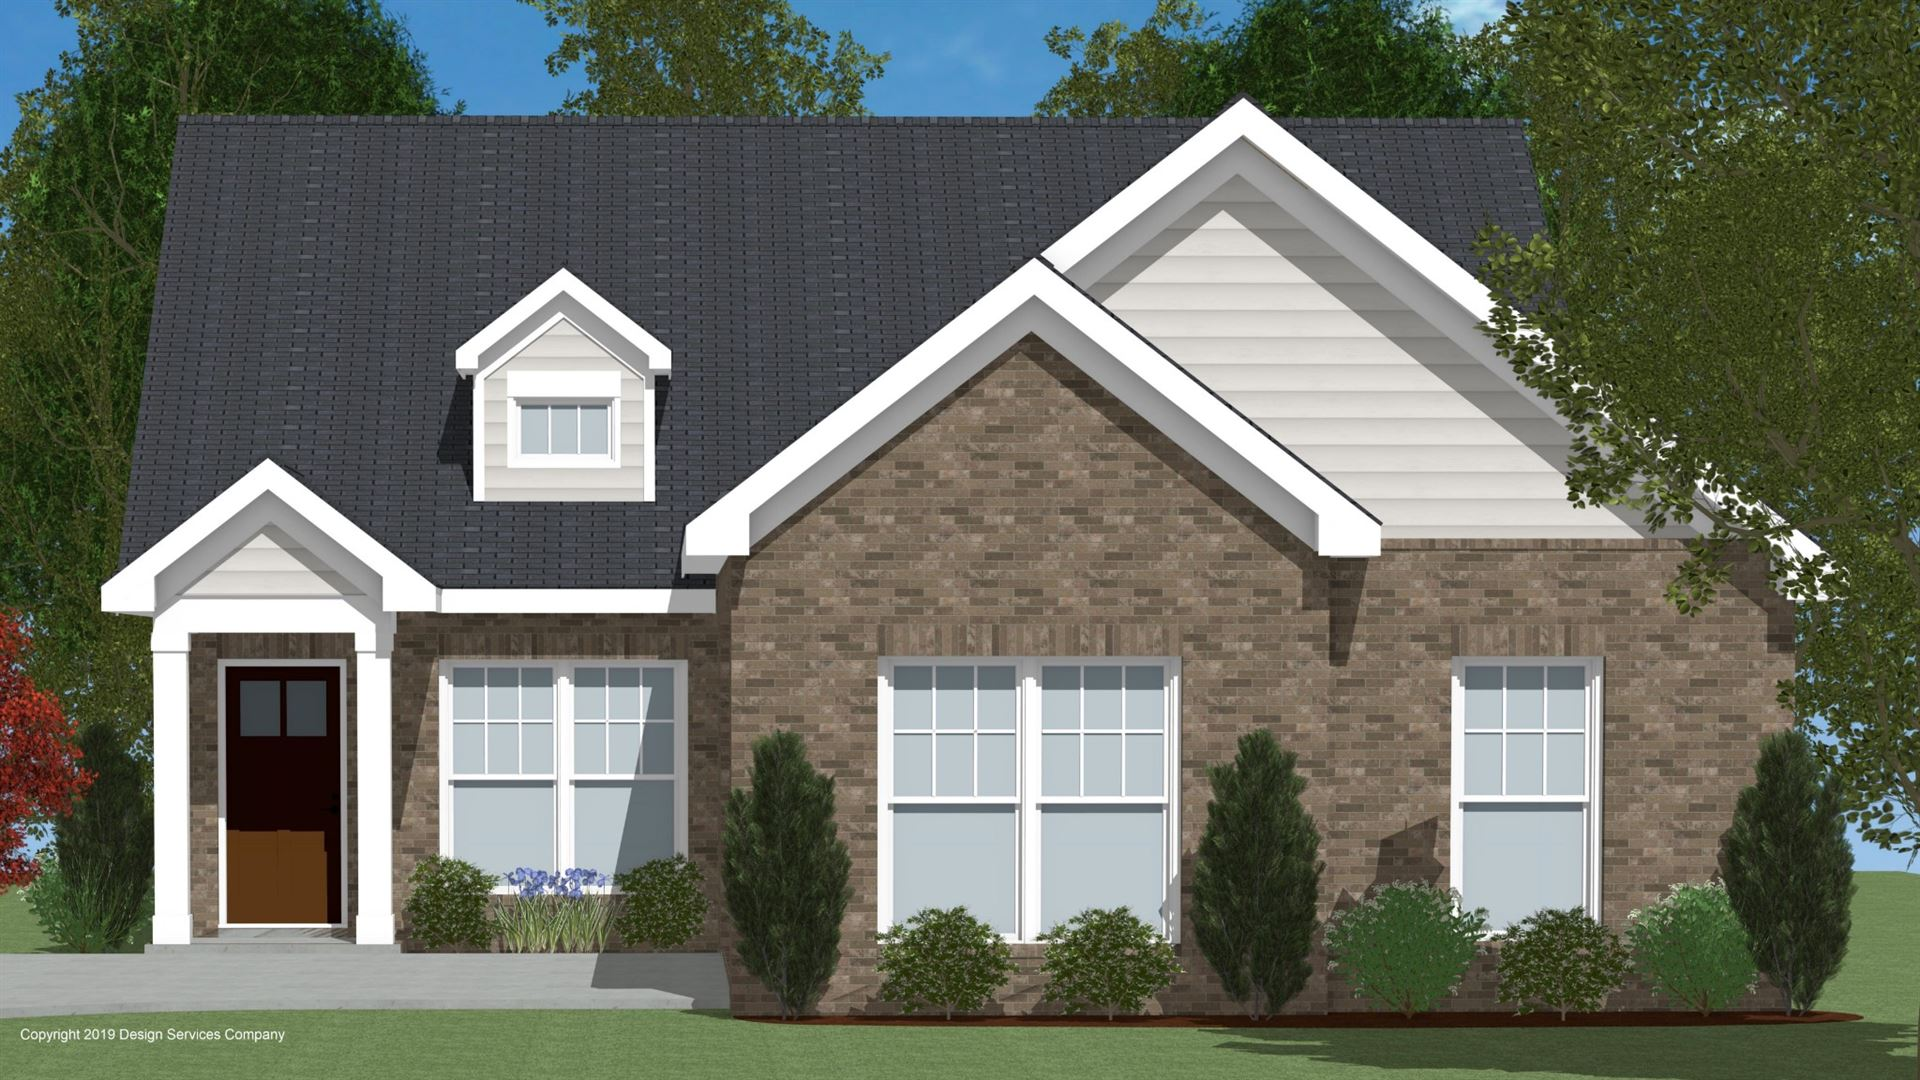 Photo of 6400 Armstrong Dr, Hermitage, TN 37076 (MLS # 2215412)